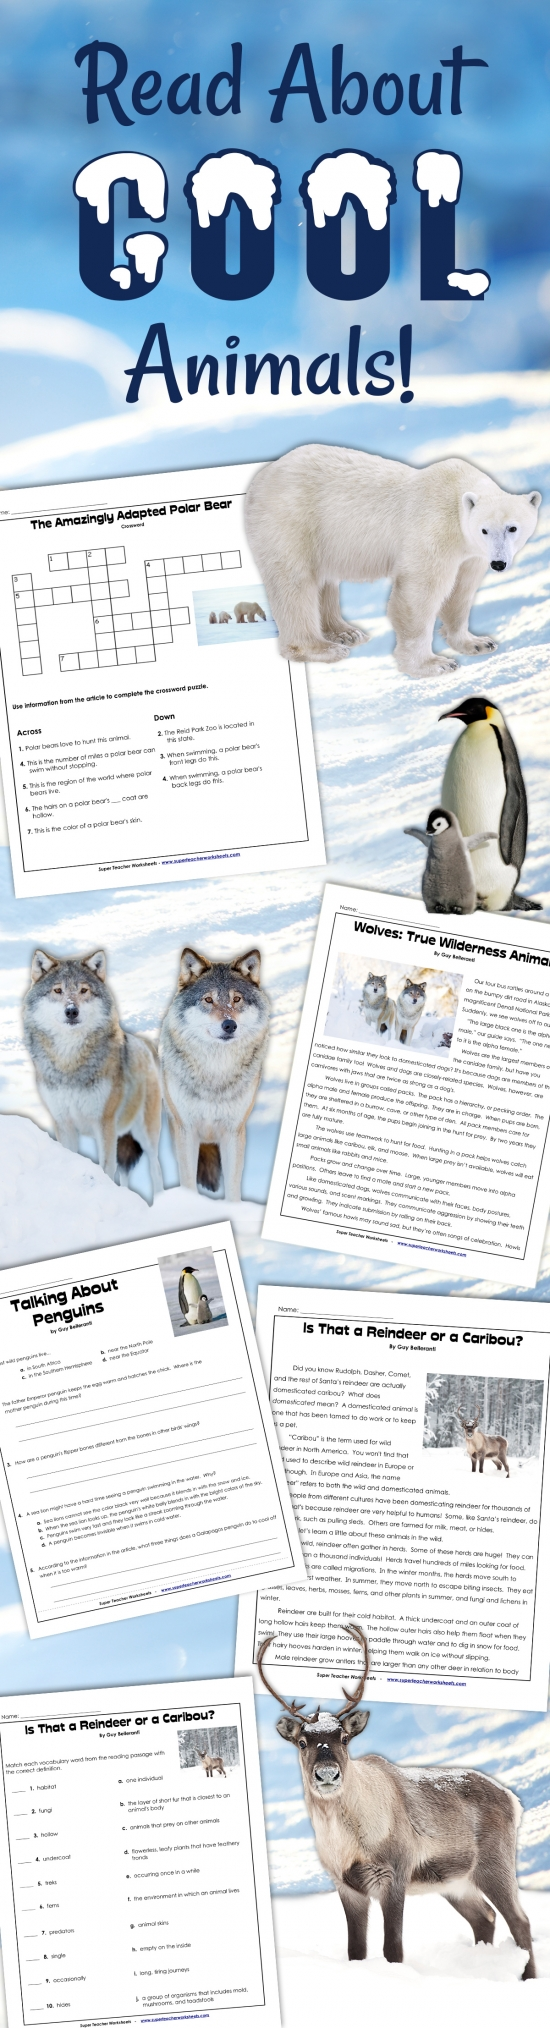 Winter Animal Articles